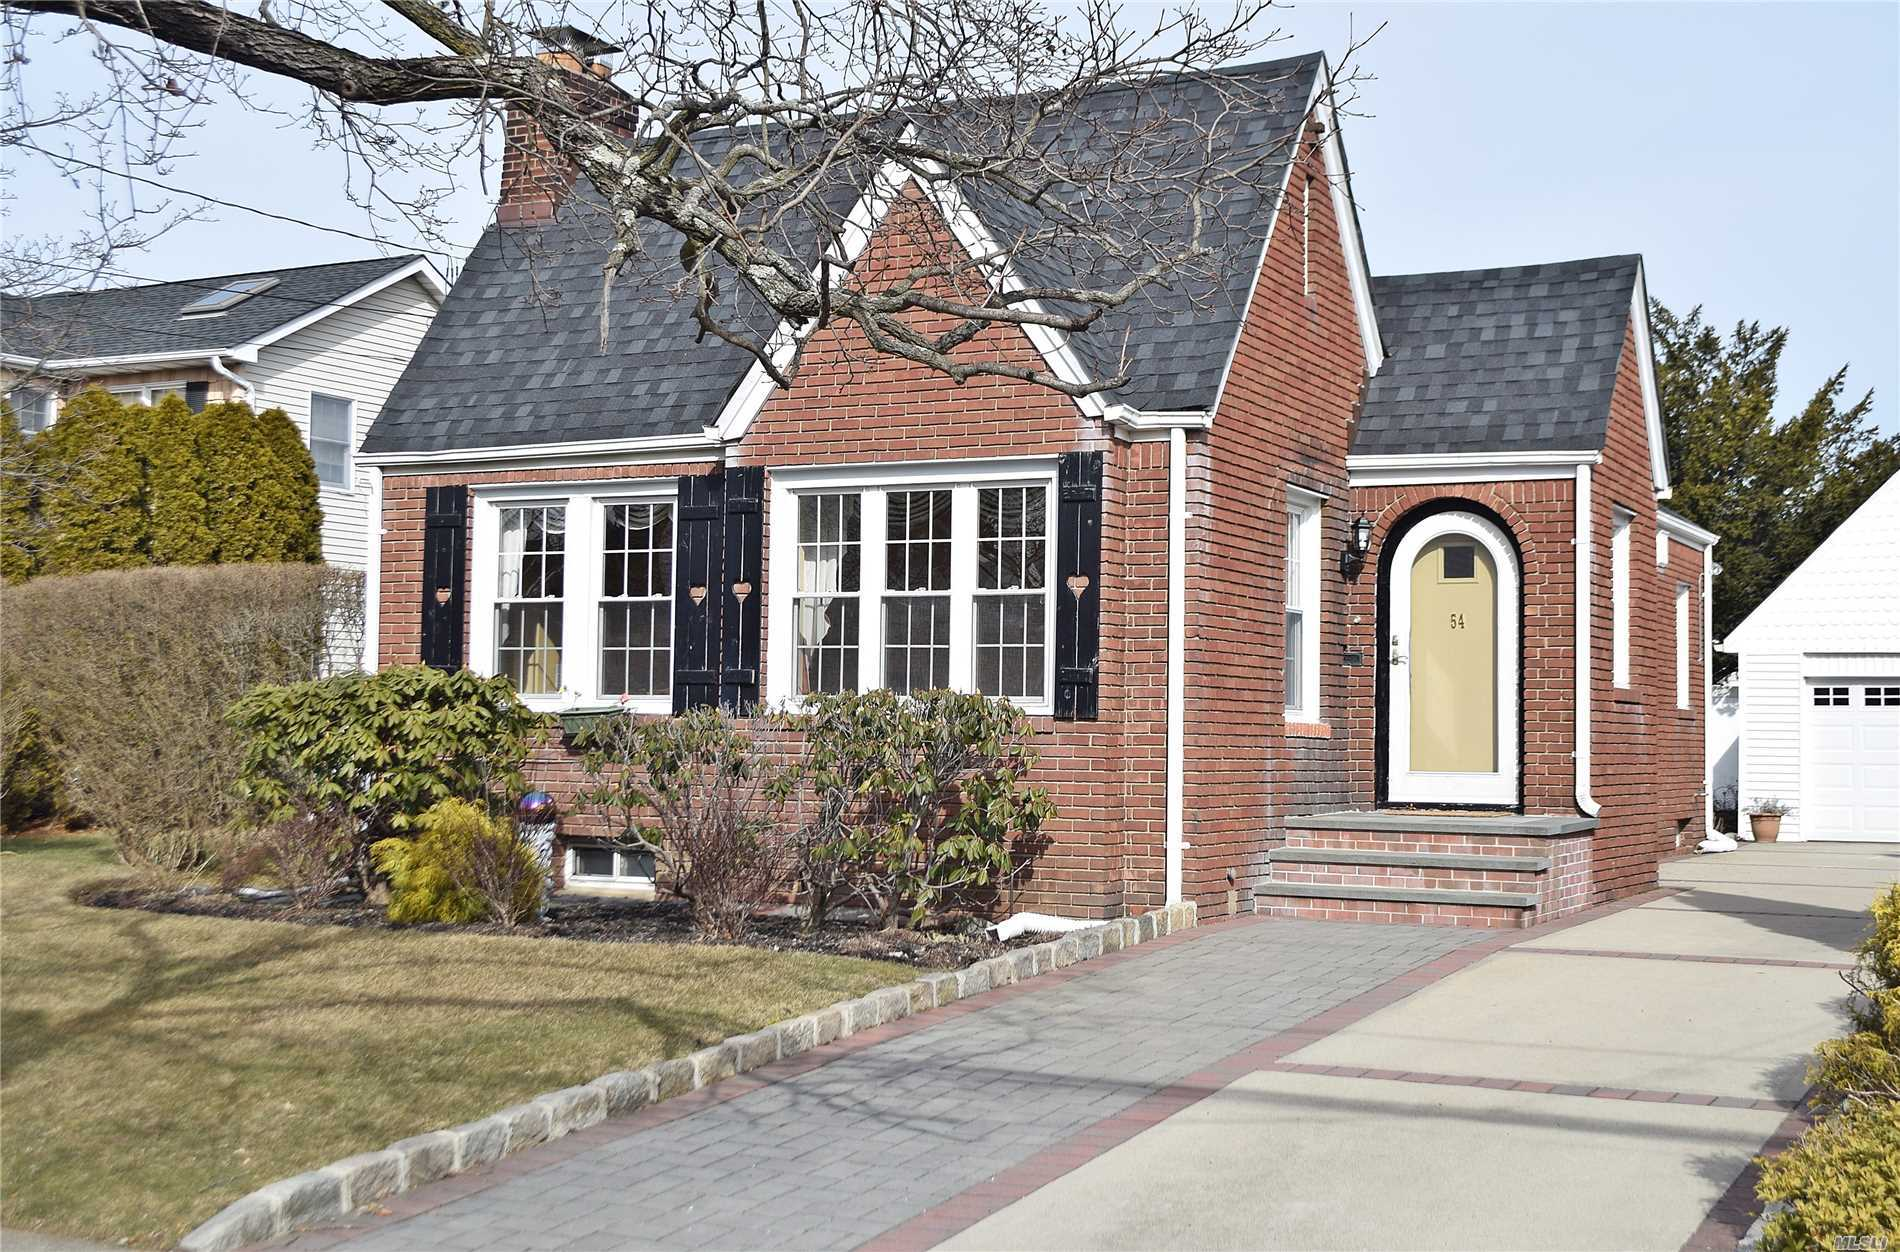 Unique One Of A Kind Picture Perfect And Charming Brick English Style Home With Large Private Yard And Located On Tree Lined Street in School District 13. Great First Home Or To Downsize, Also Offers Ample Property for future Expansion. Truly a must see.